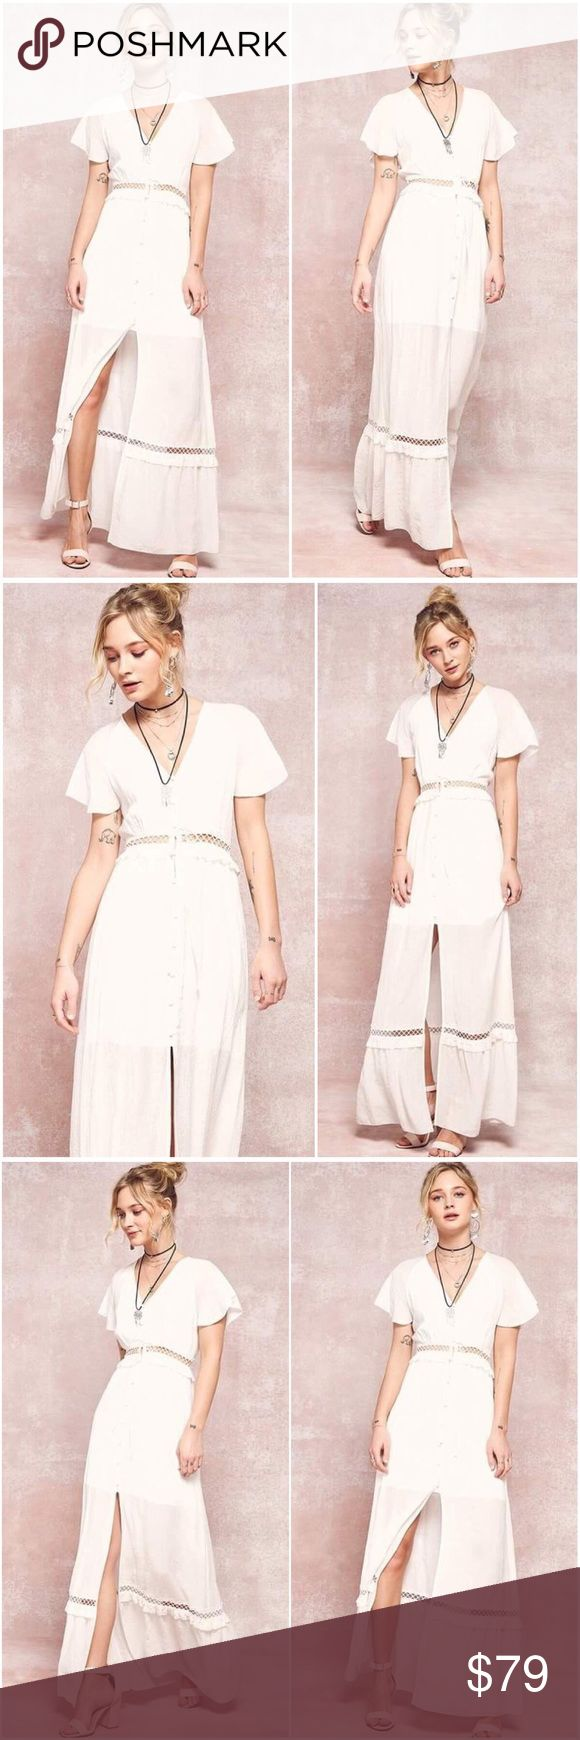 🆕NOW AVAILABLE La Lune Ivory Maxi Boho Dress A woven boho maxi dress featuring a plunge neckline, button down front, self tie waist, short butterfly sleeves, front slit and ruffled lace trim detail. Under layer is lined with shorter skirt. Made with a medium weight woven fabric that has a very soft texture and drapes beautifully. 100% Rayon. Pink and sage are also available upon request. Please ask for availability of other color options. A Mermaid's Epiphany Dresses Maxi